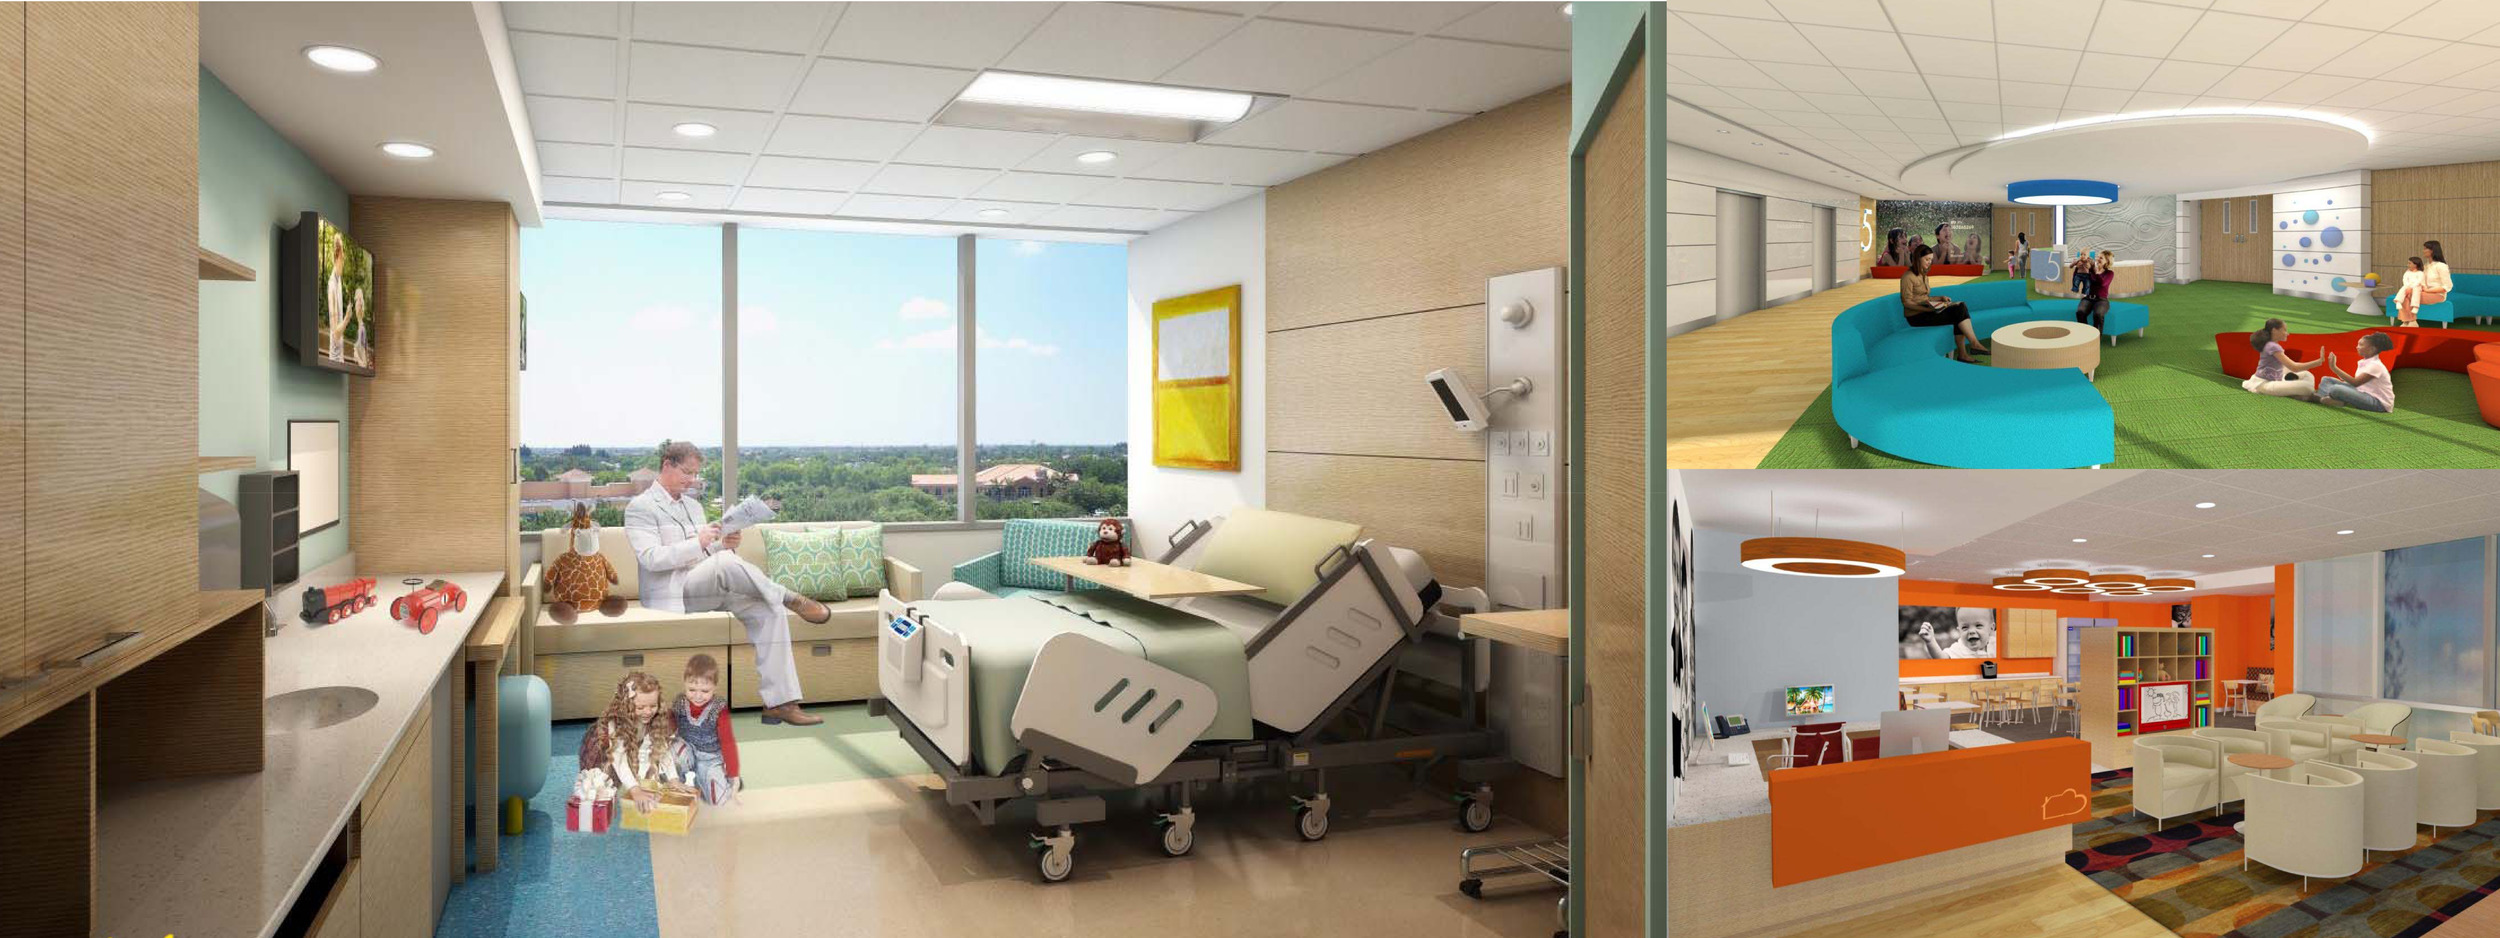 07.Golisano-Interior_Renderings3-14_03123.jpg